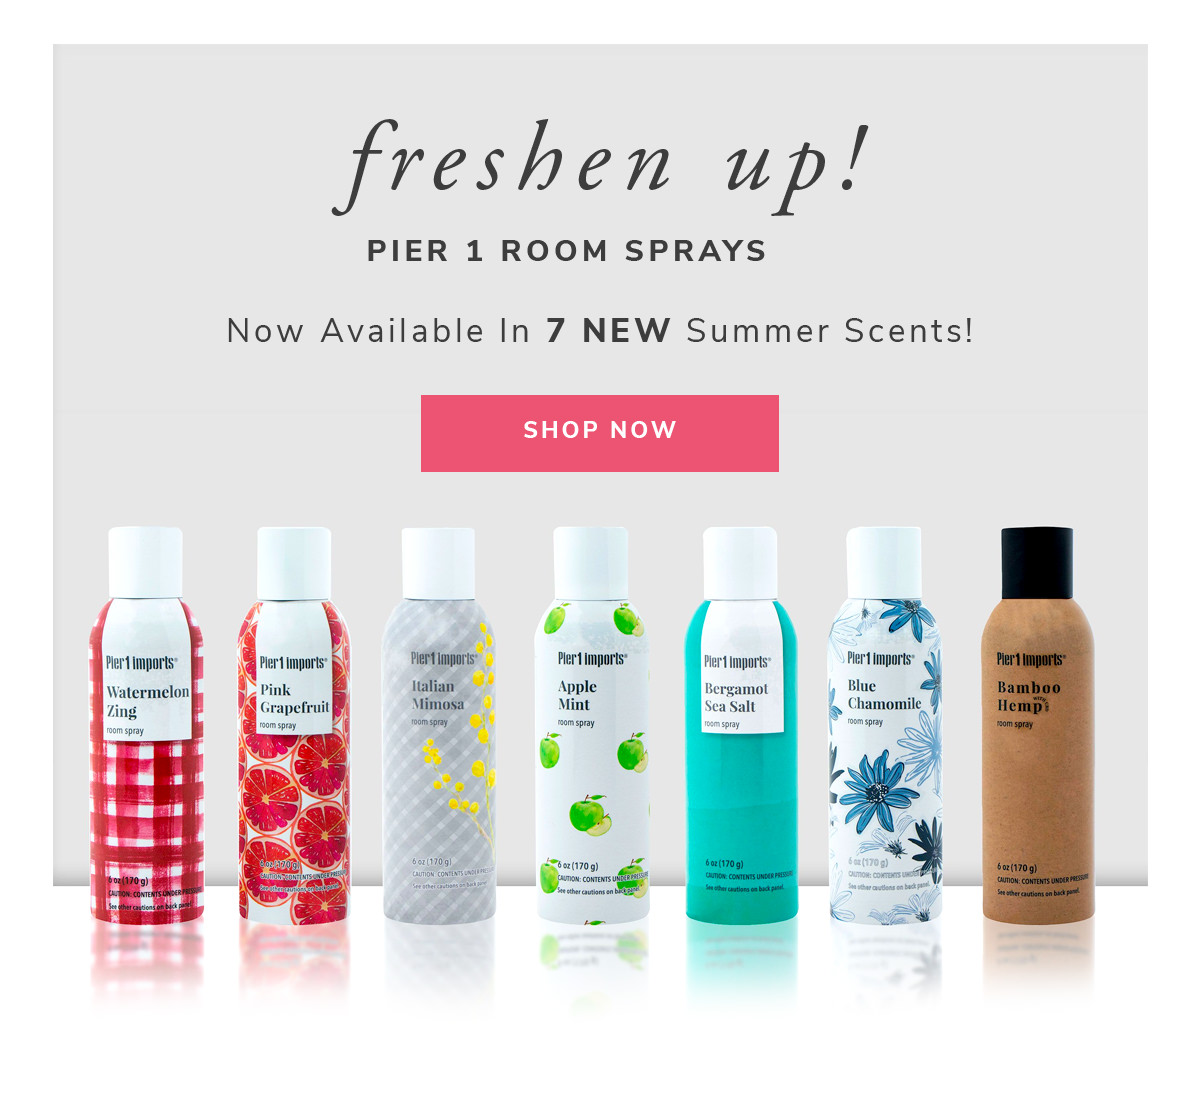 Freshen Up! Pier 1 Room Sprays. Now Available in 7 NEW Summer Scents!